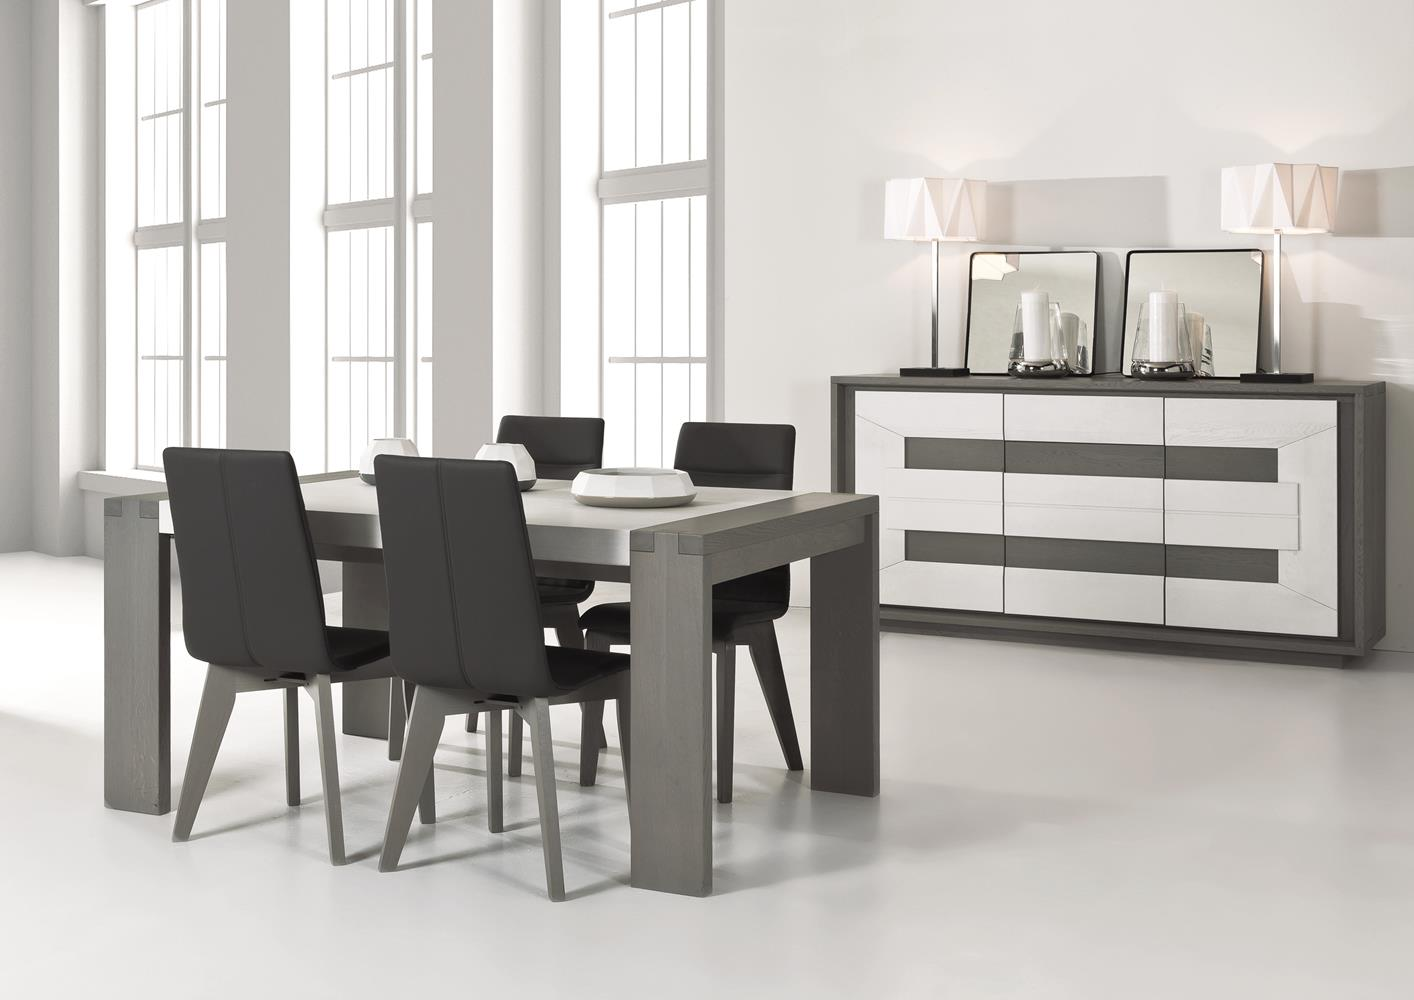 acheter votre table moderne en ch ne avec allonge chez simeuble. Black Bedroom Furniture Sets. Home Design Ideas